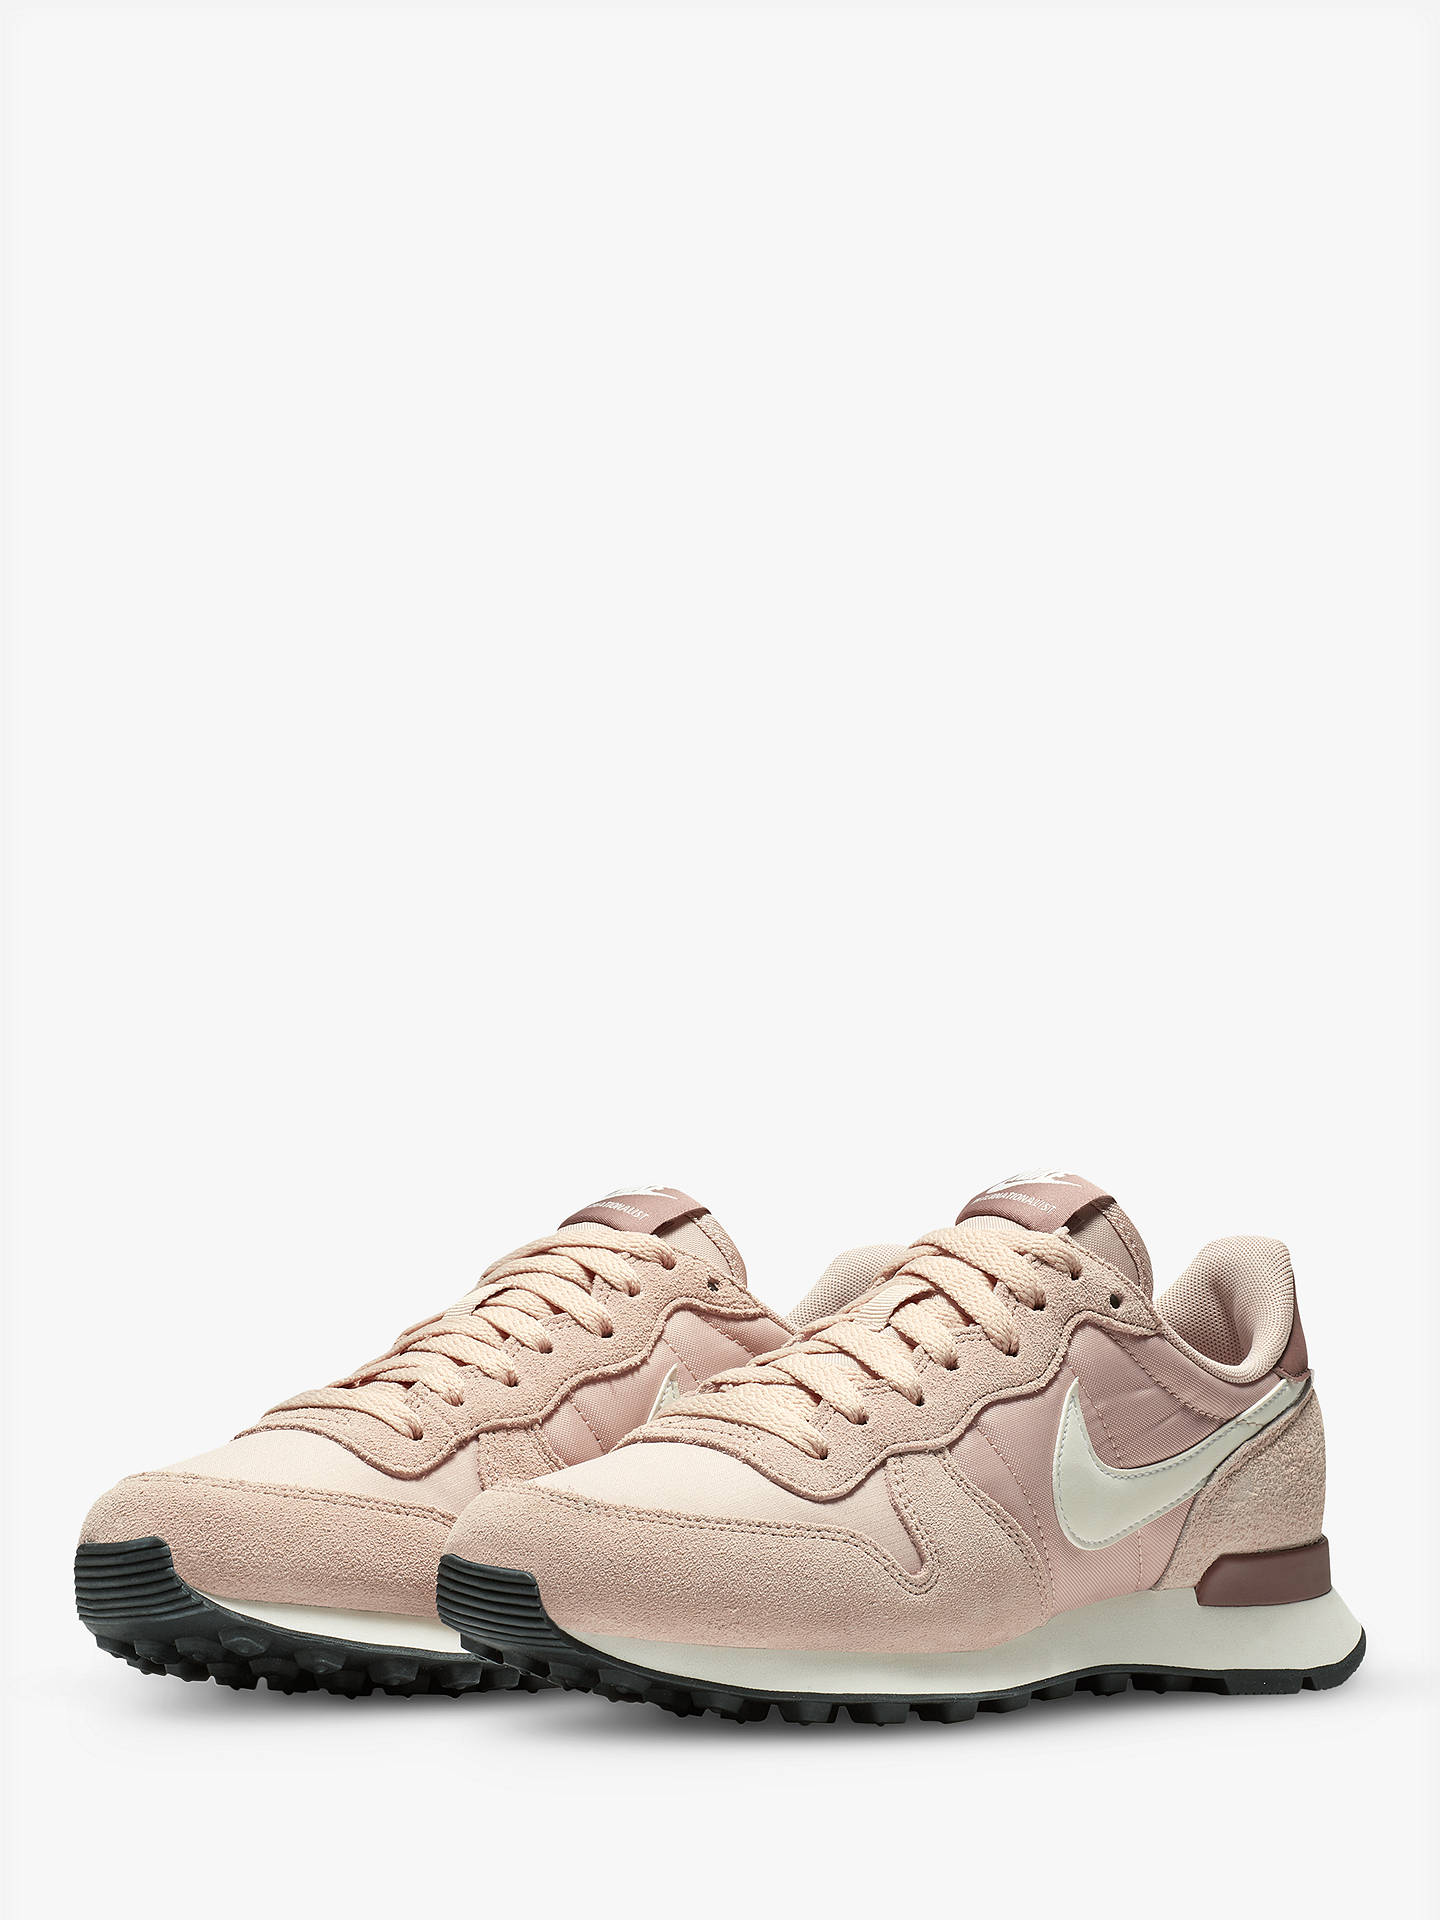 abef2c3d5f ... Buy Nike Internationalist Women's Trainers, Particle Beige/Summit White/Smokey  Mauve, 4 ...